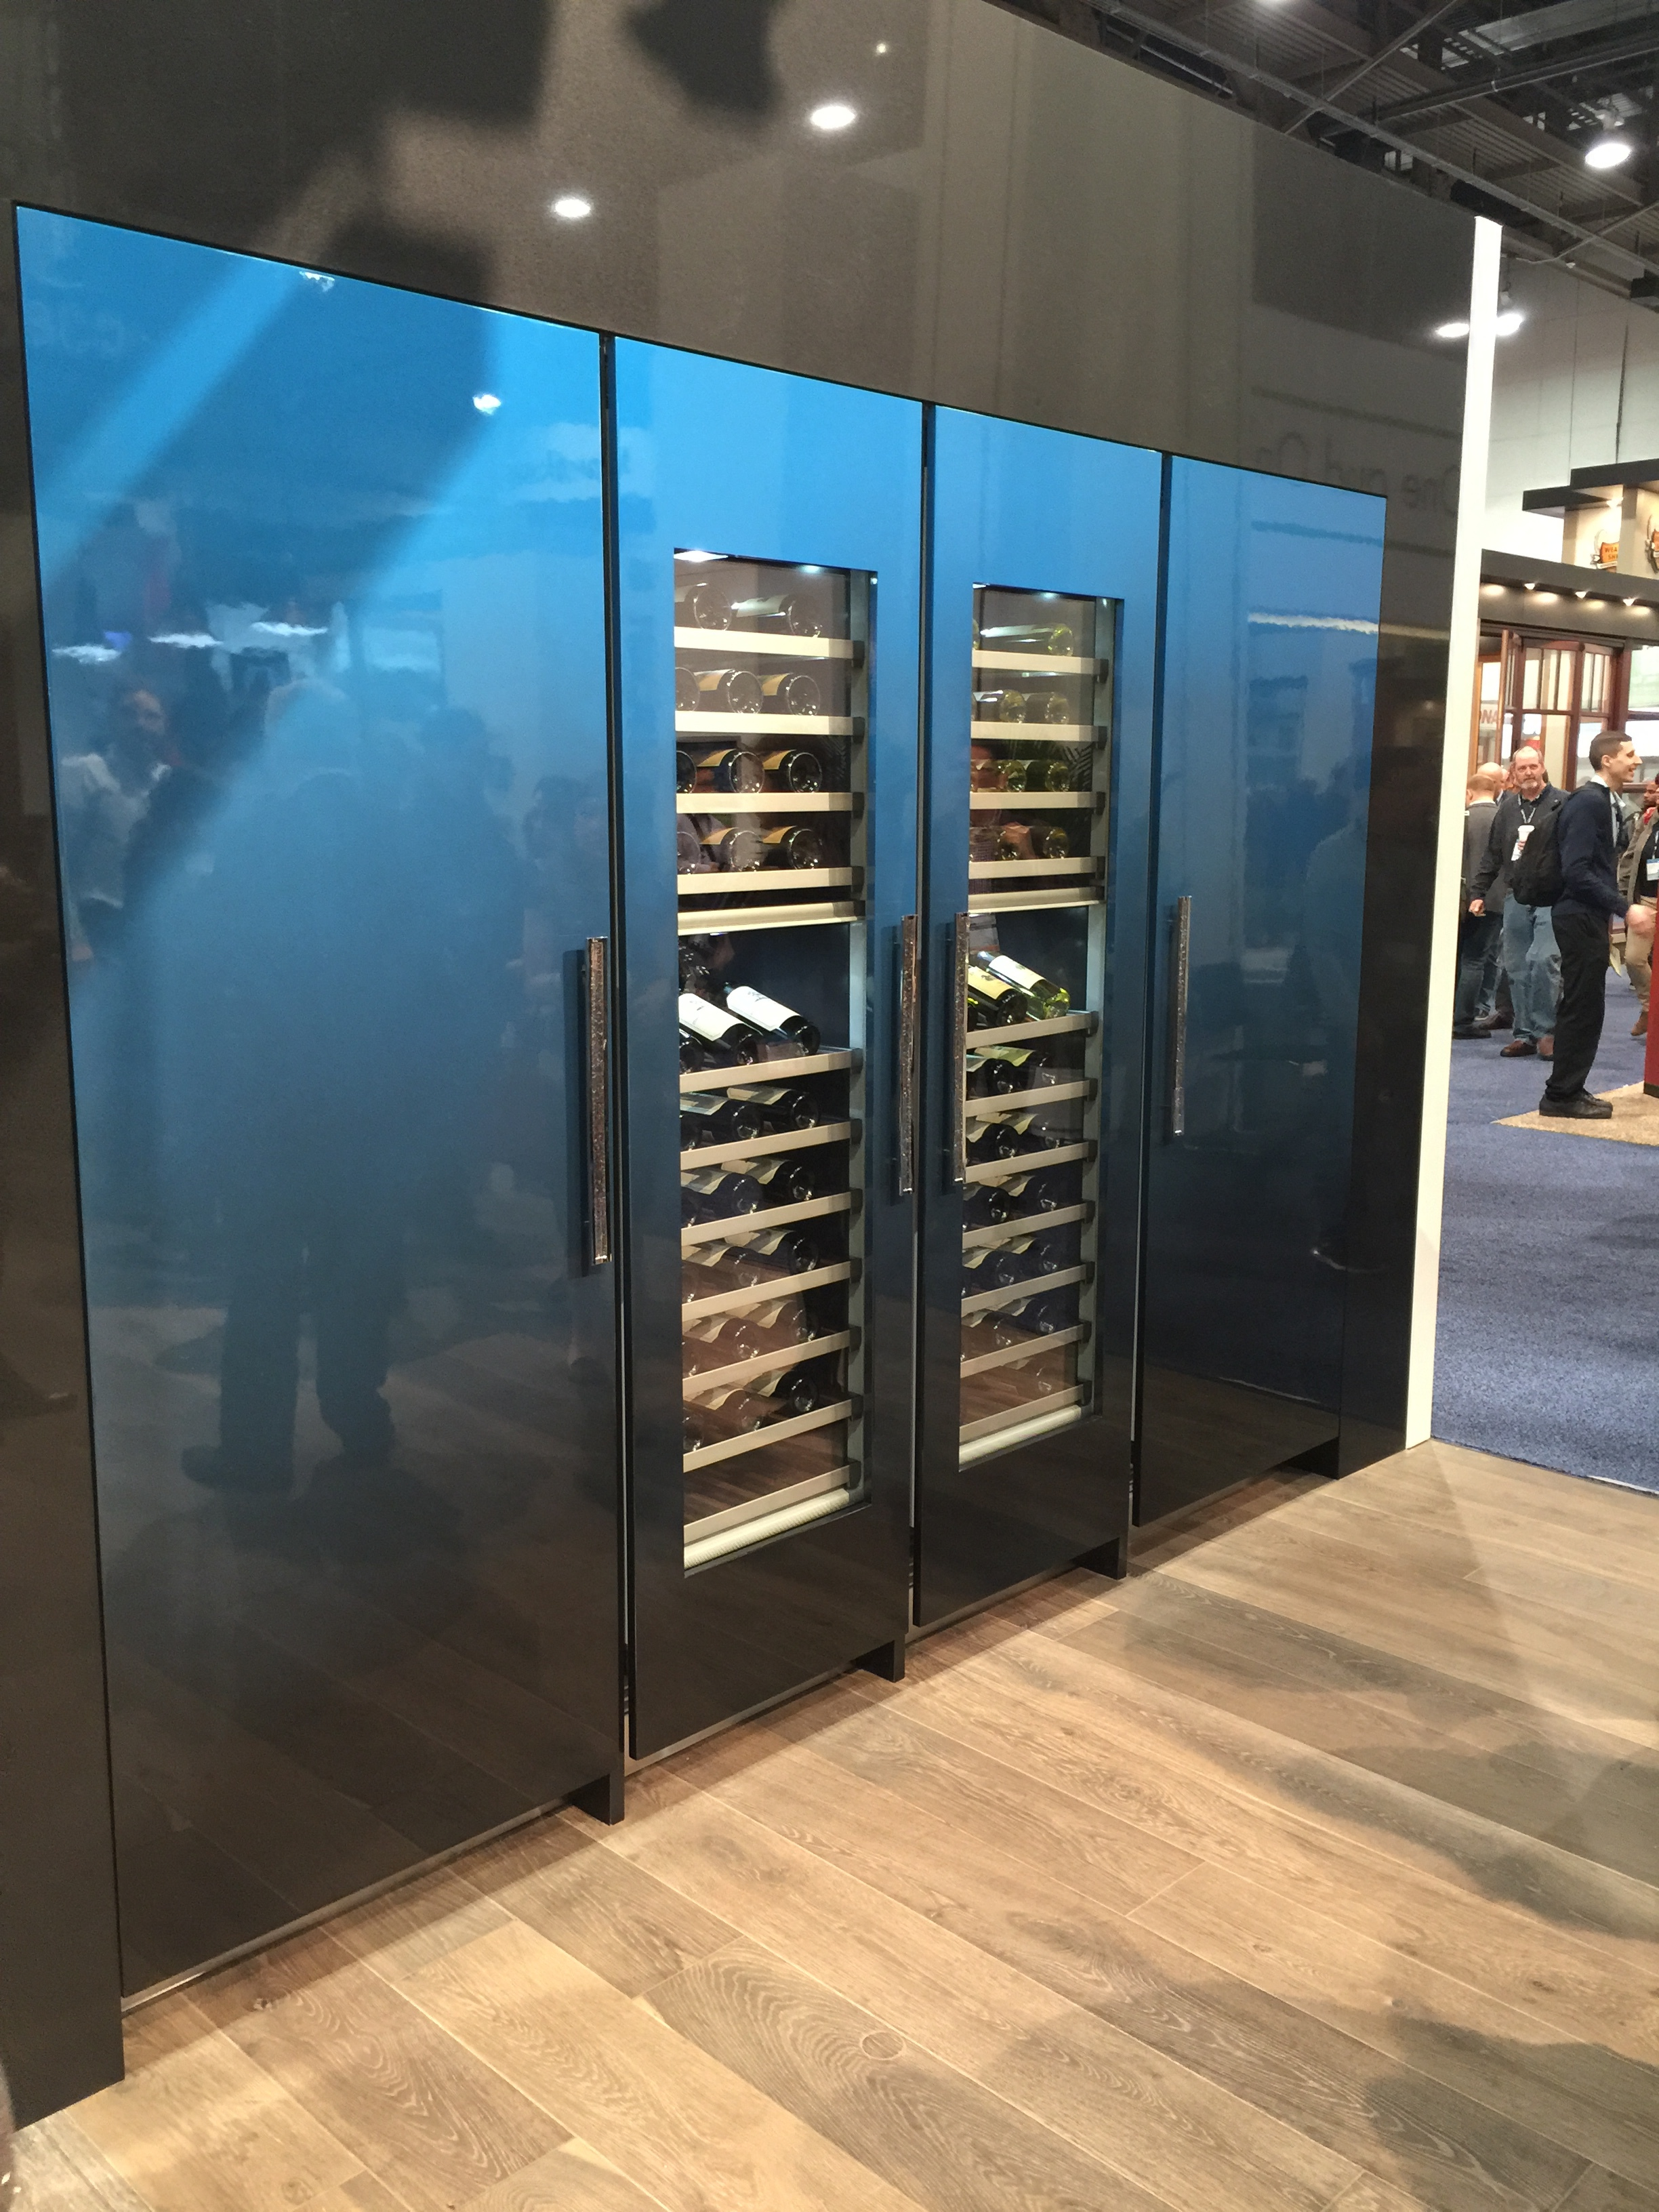 Wall of refrigeration from    Thermador    in an auto paint finish | KBIS2016